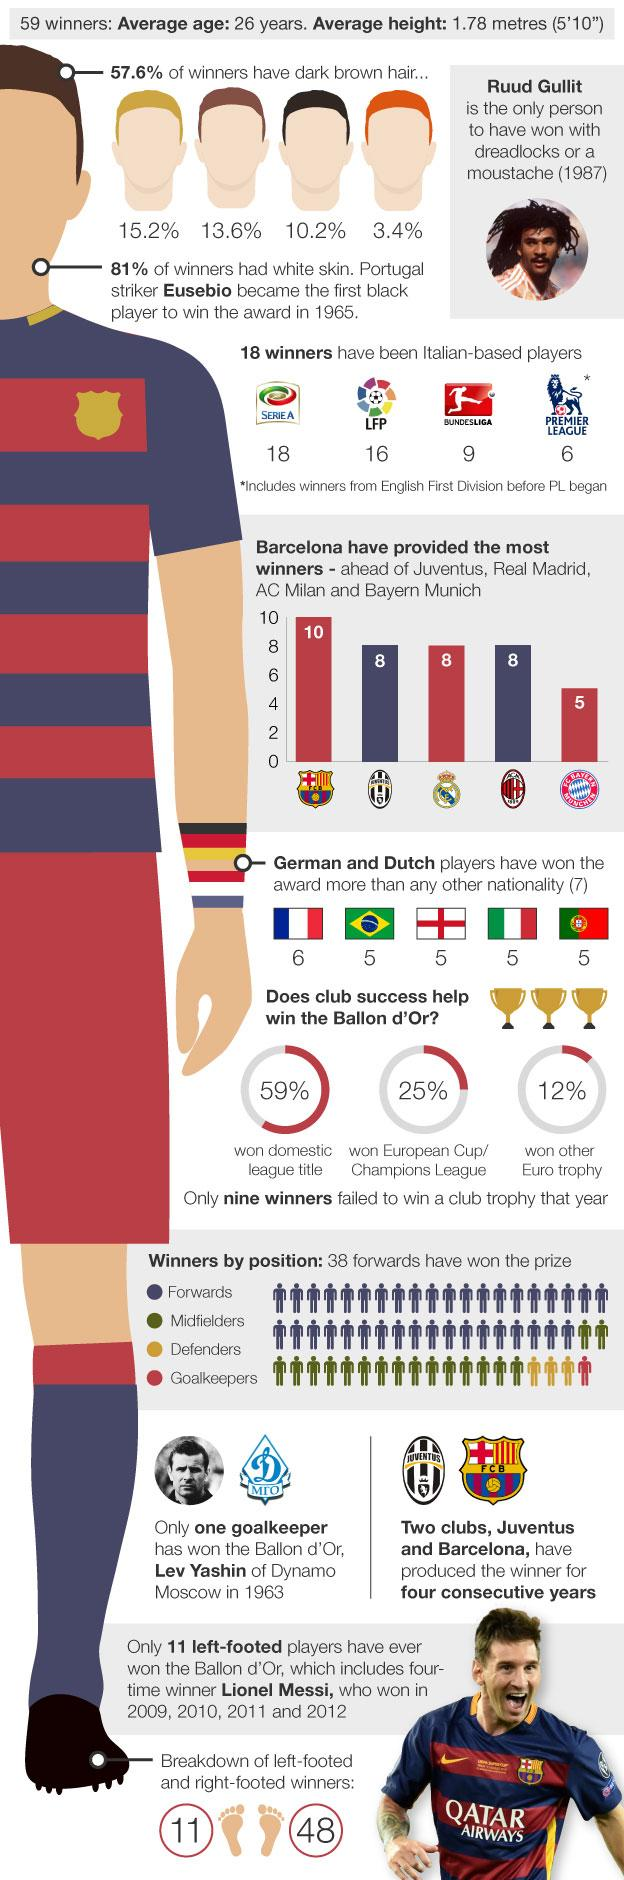 Graphic looking at characteristics of Ballon d'Or winners from past 50 years